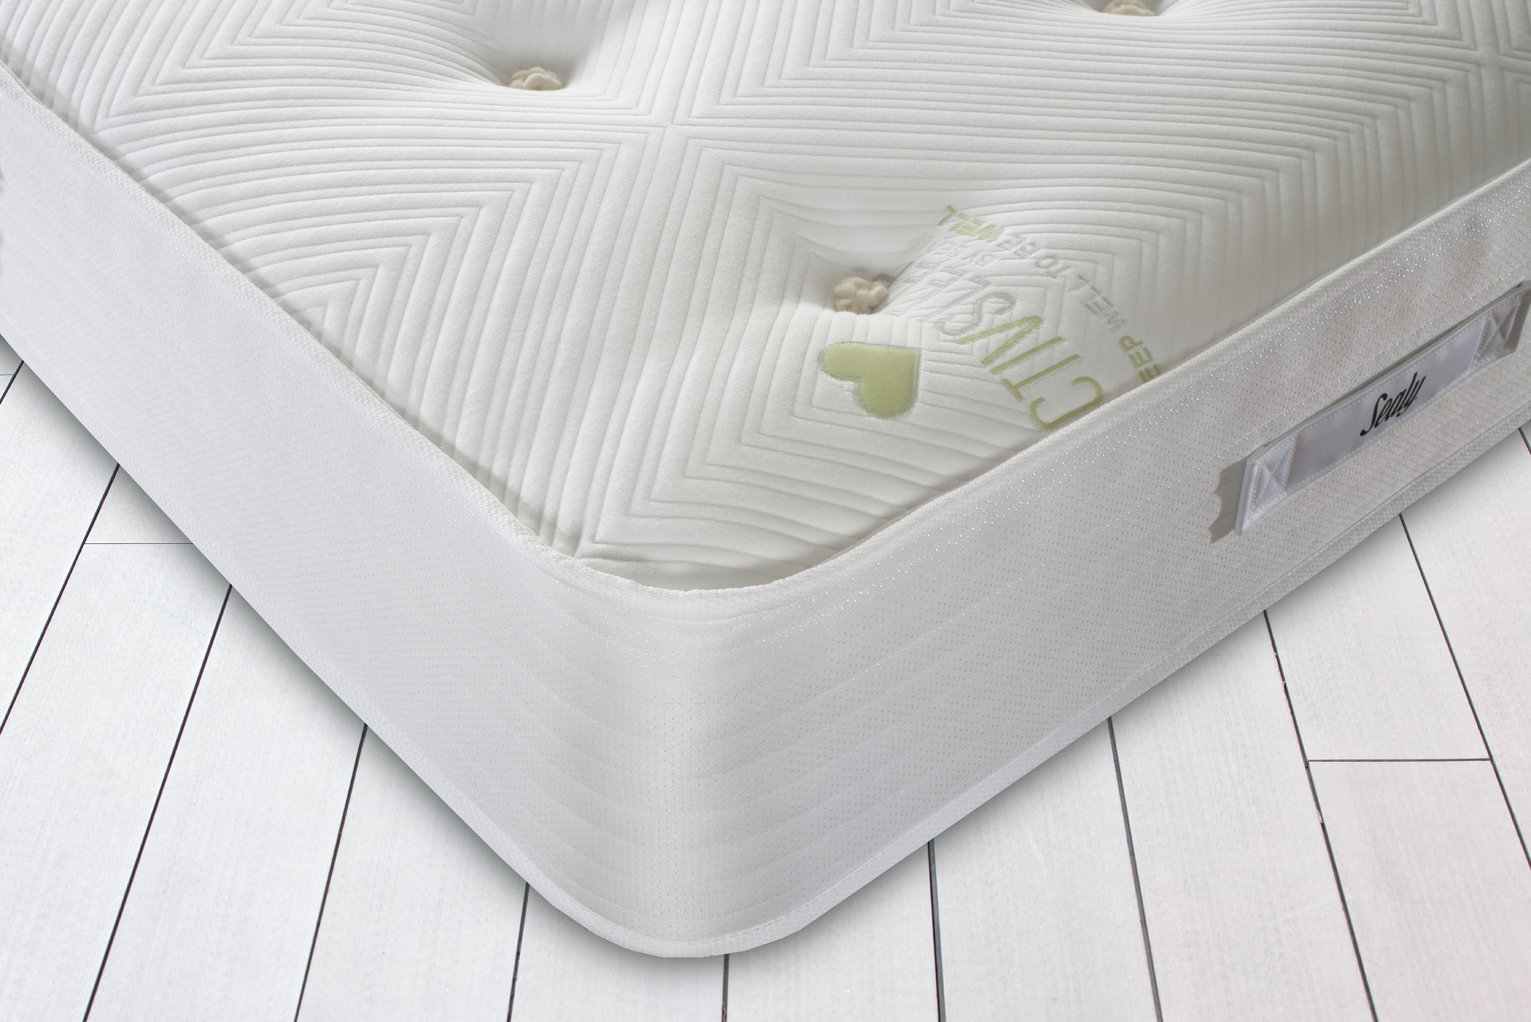 Single Pocket Sprung Memory Foam Mattress Sealy Activ 1800 Pocket Sprung Memory Single Mattress